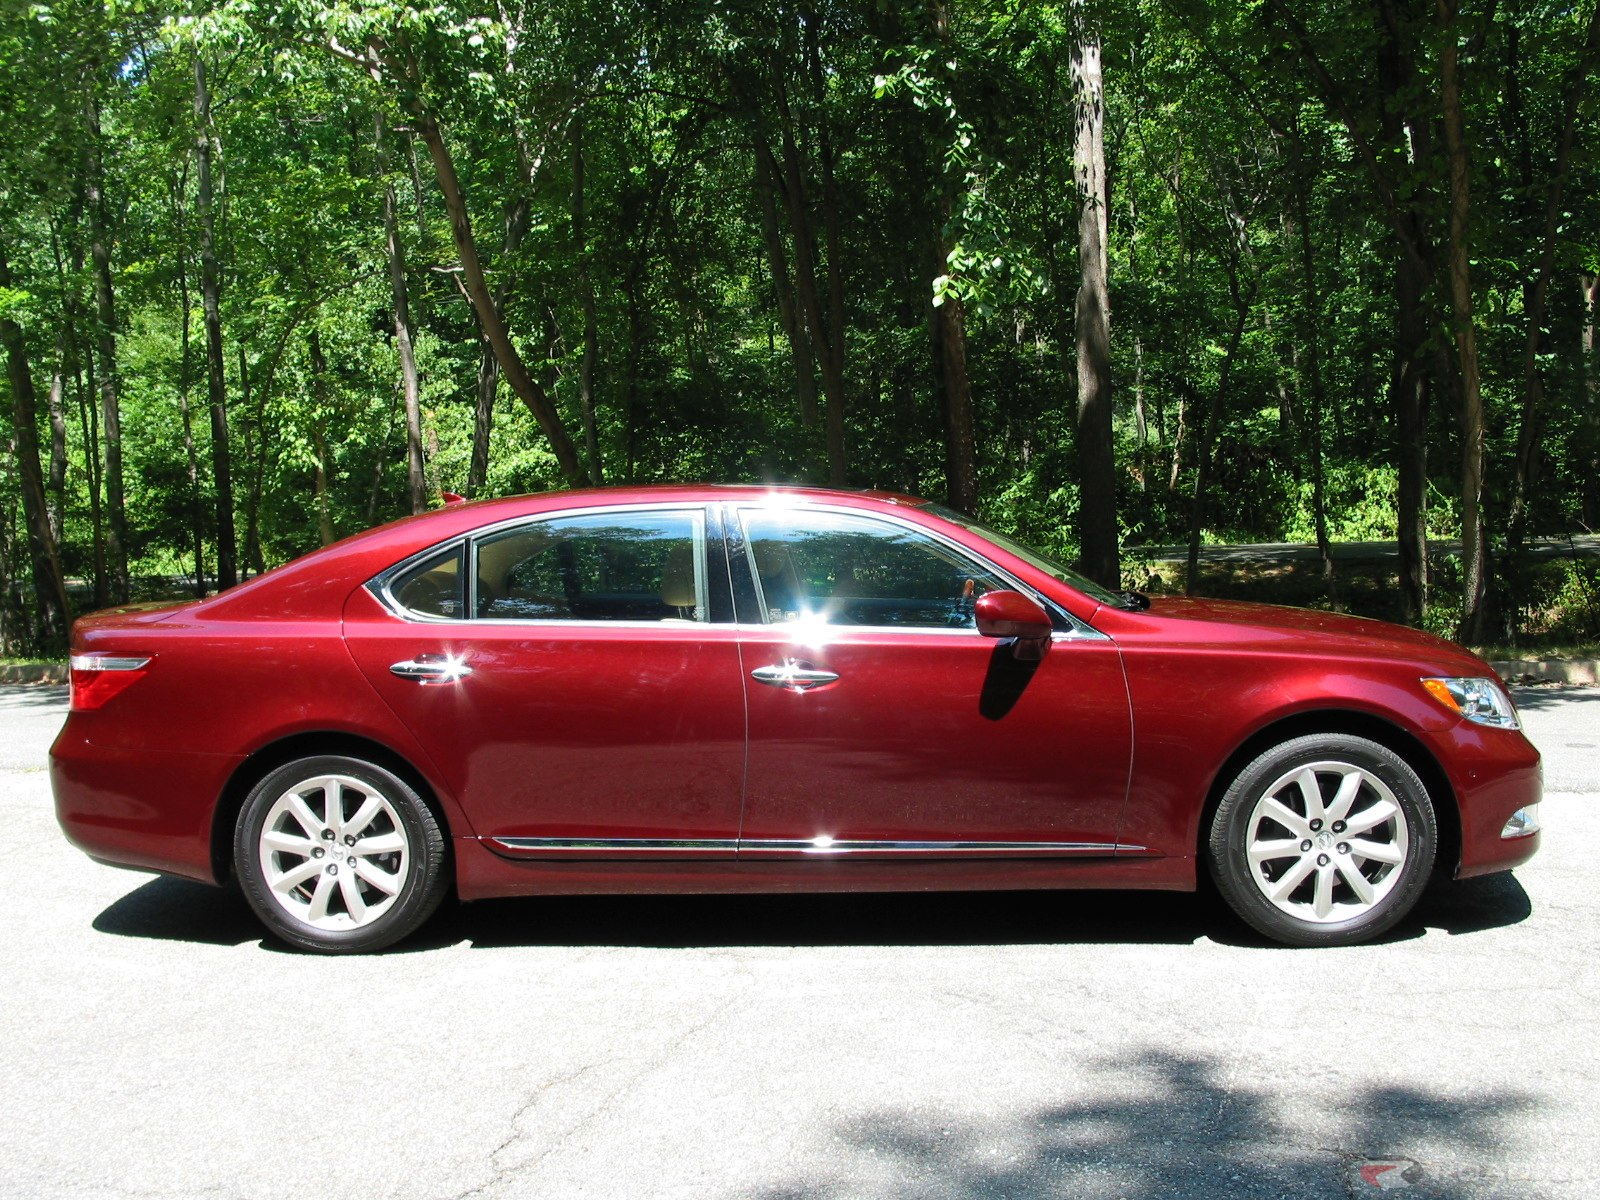 Lexus ls460l photo - 1